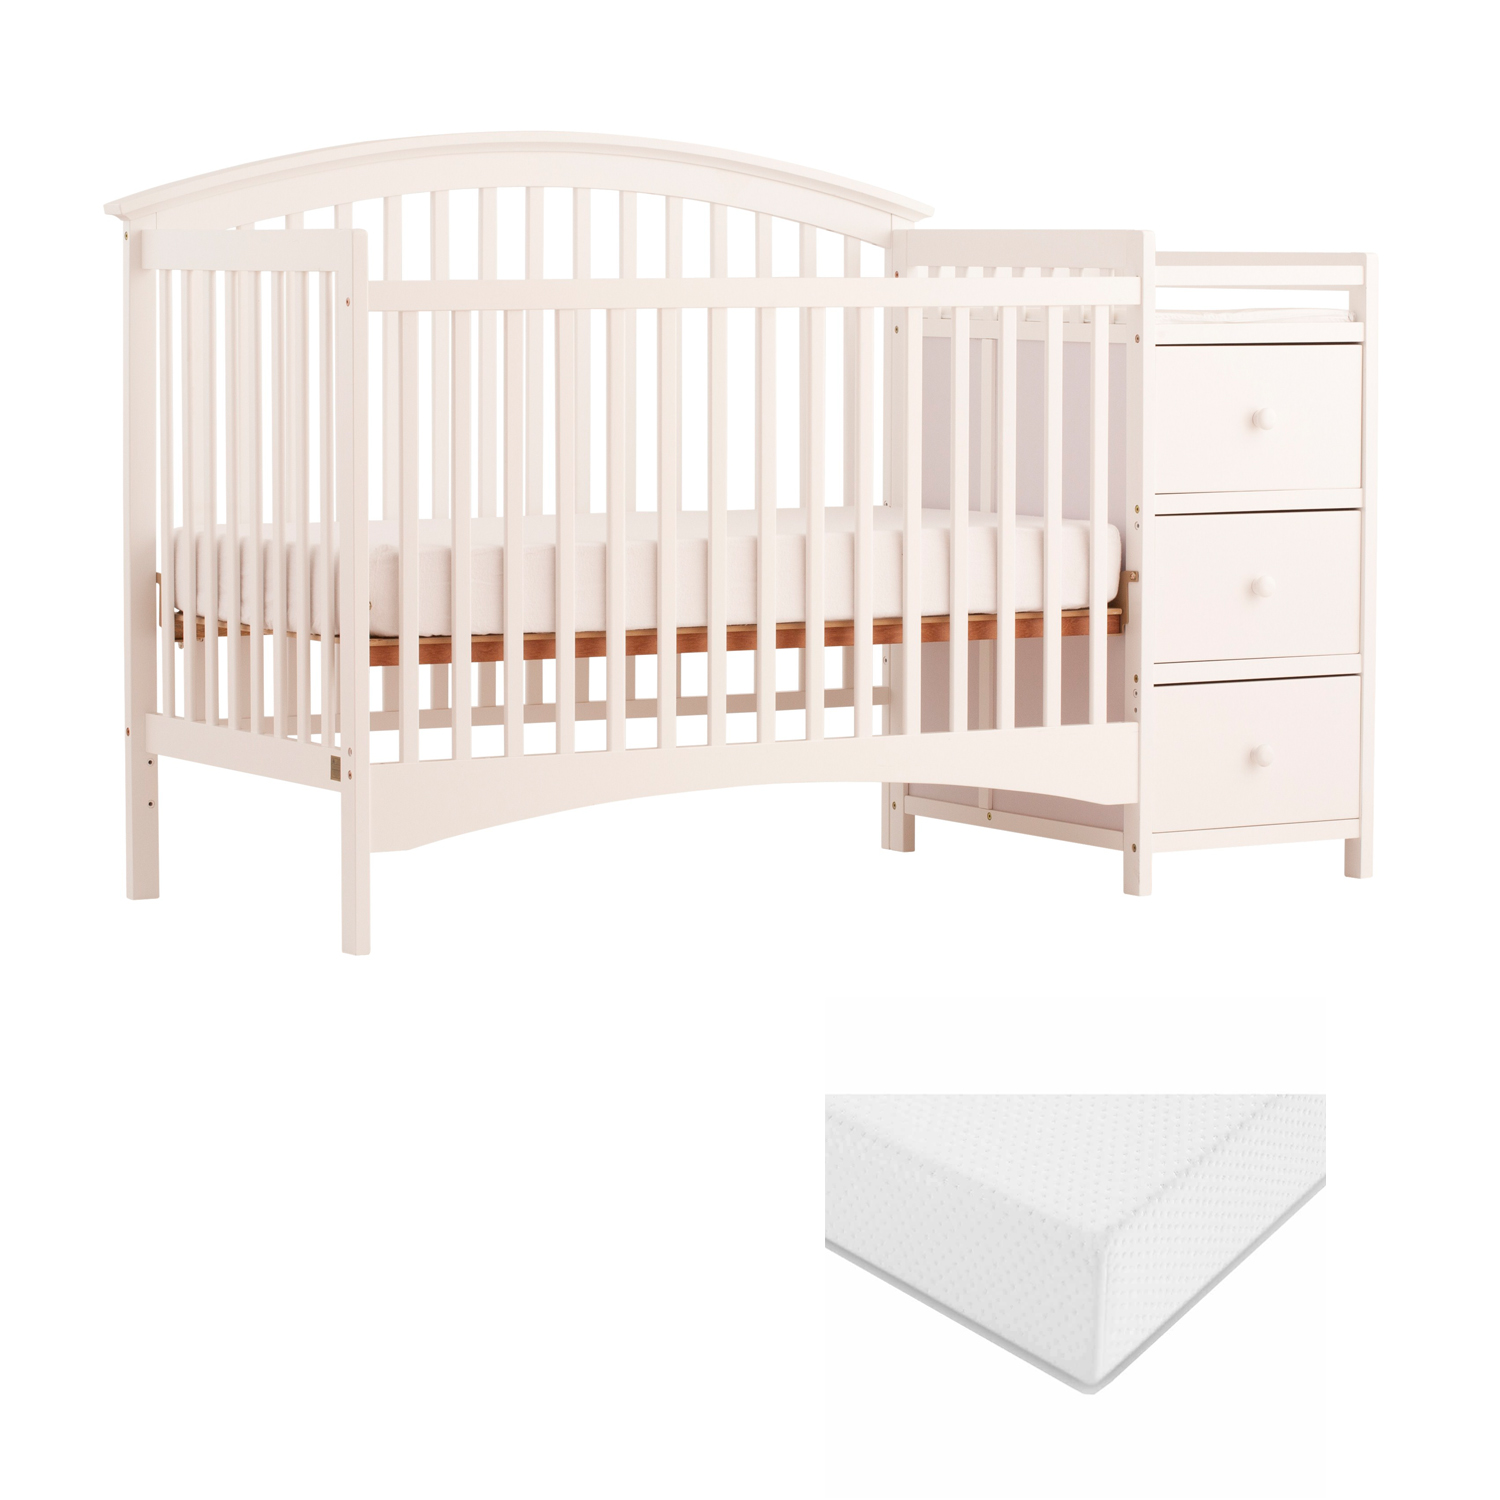 Storkcraft Bradford 4 in 1 Convertible Crib and Changer with BONUS Graco Premium Foam Mattress